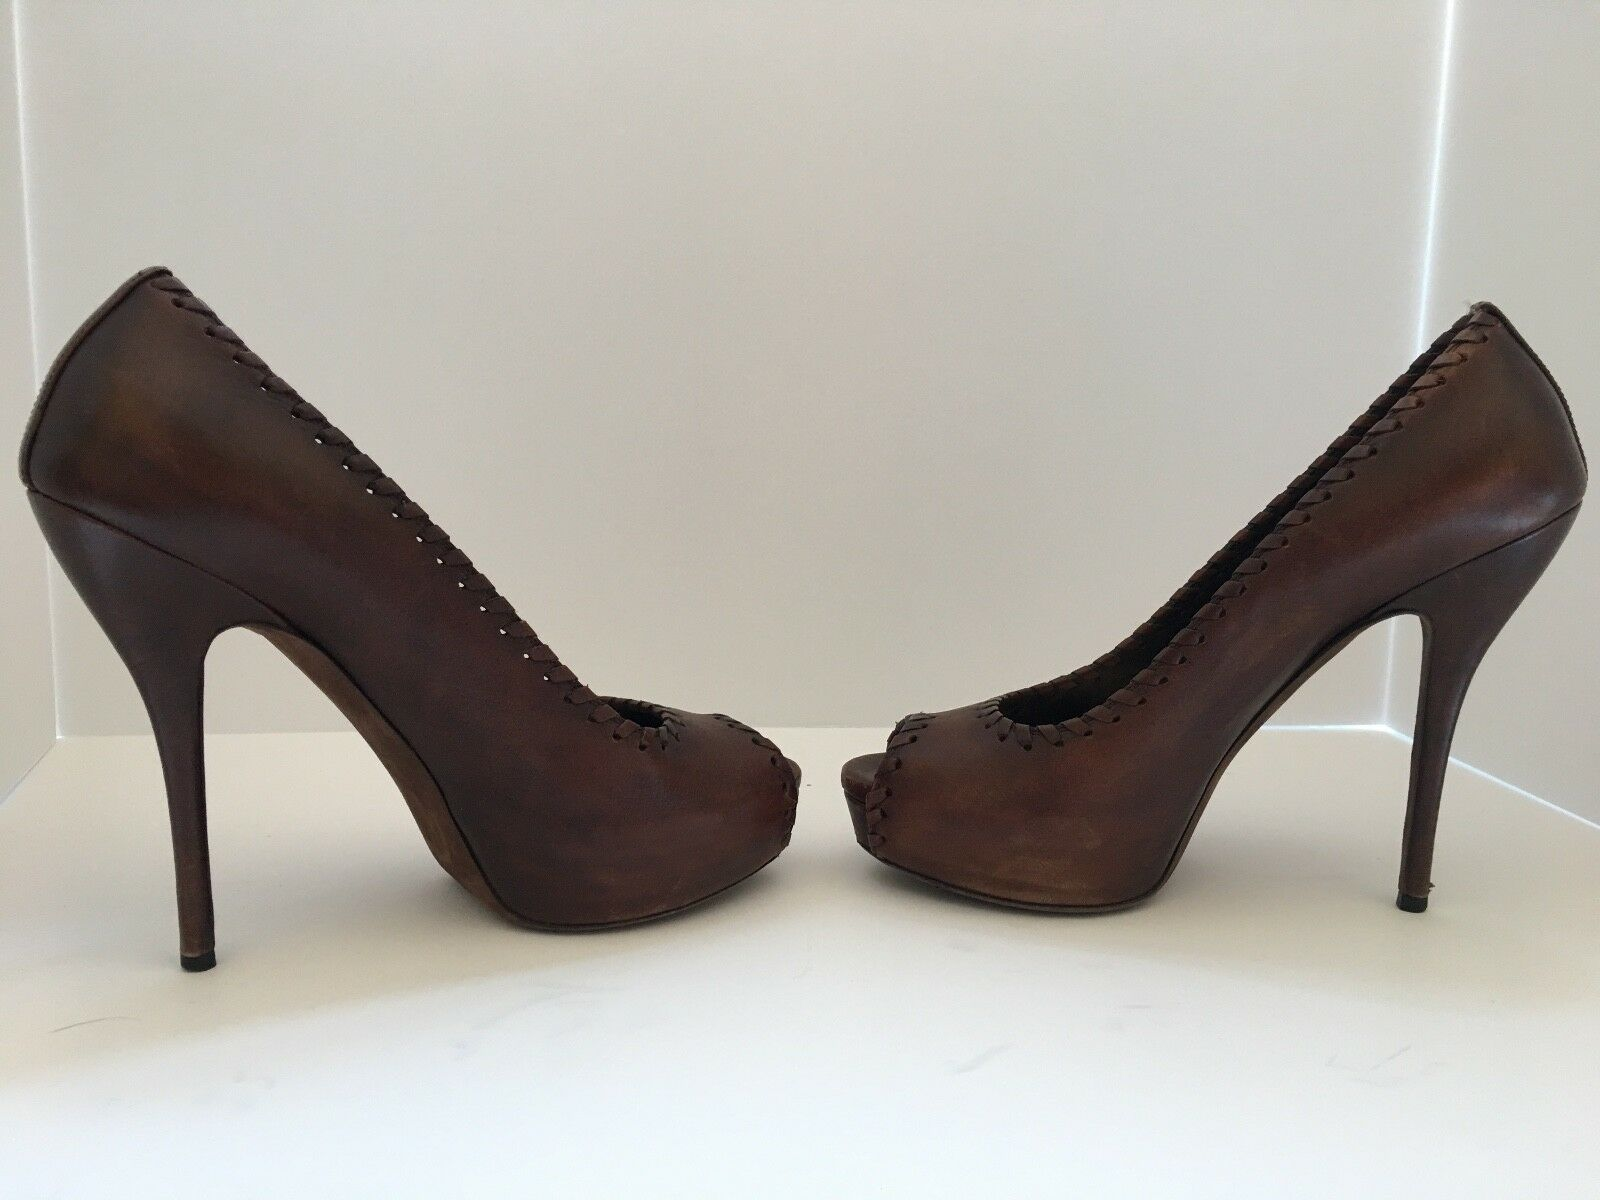 57590f1c203 GUCCI peep toe Saddle PUMPS SZ. 38.5 1 of 11Only 1 available ...